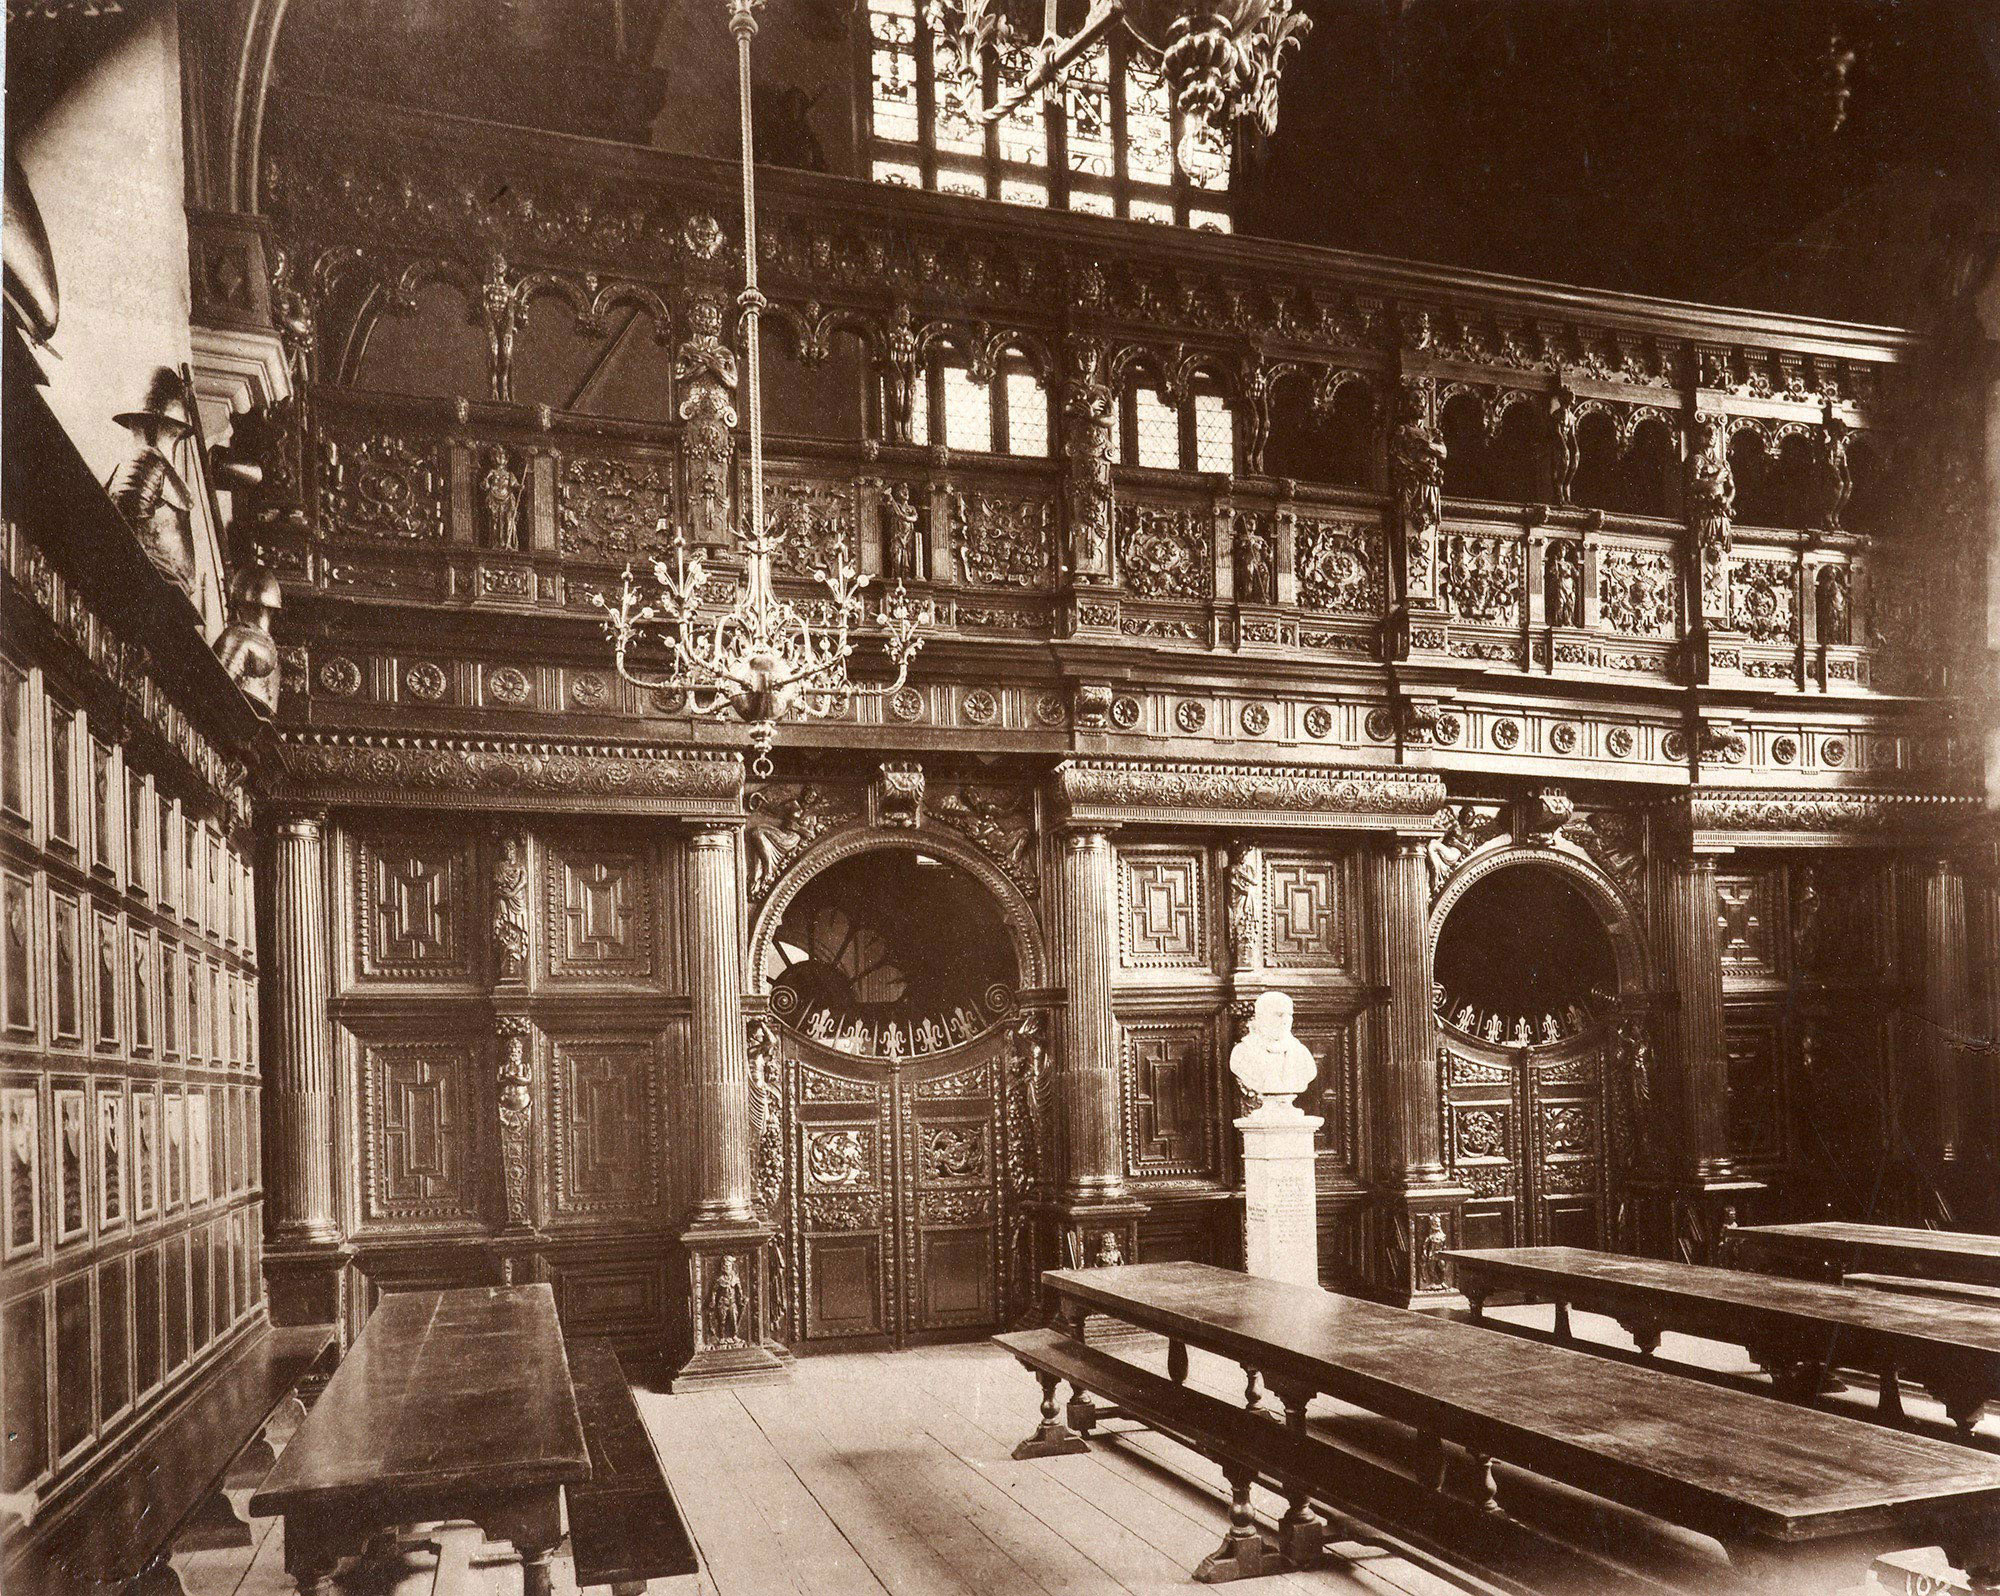 Photograph of Middle Temple Hall, the location for the first recorded performance of Twelfth Night